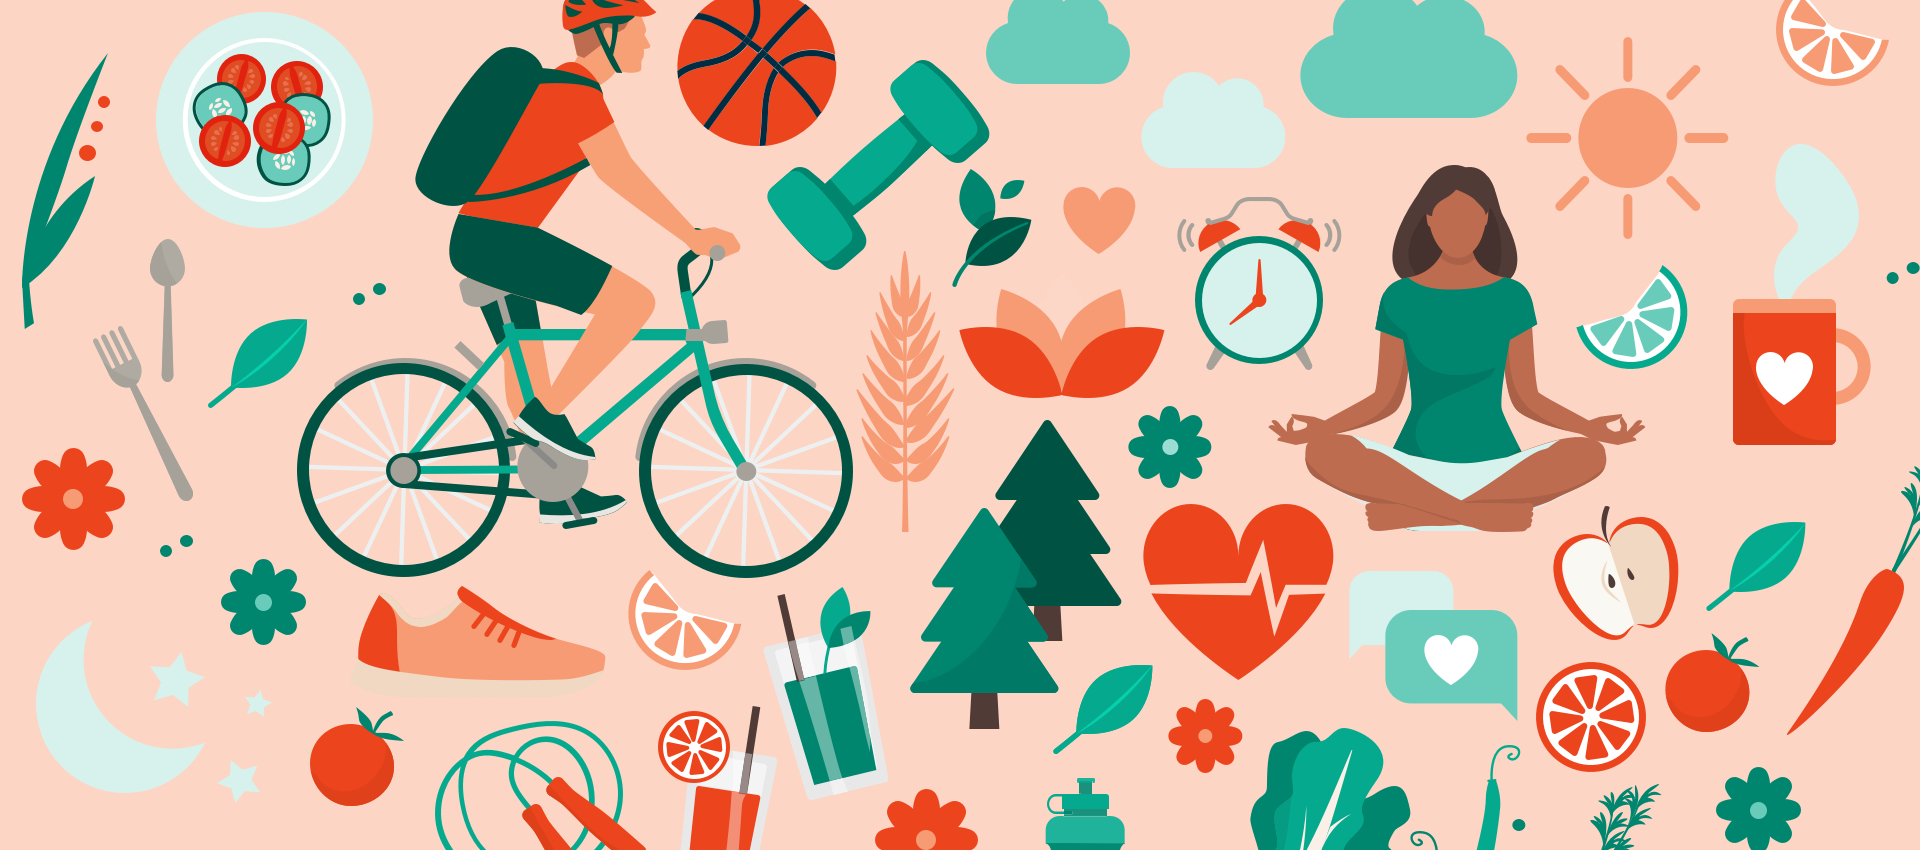 national wellness month illustration of man riding bike and women doing yoga